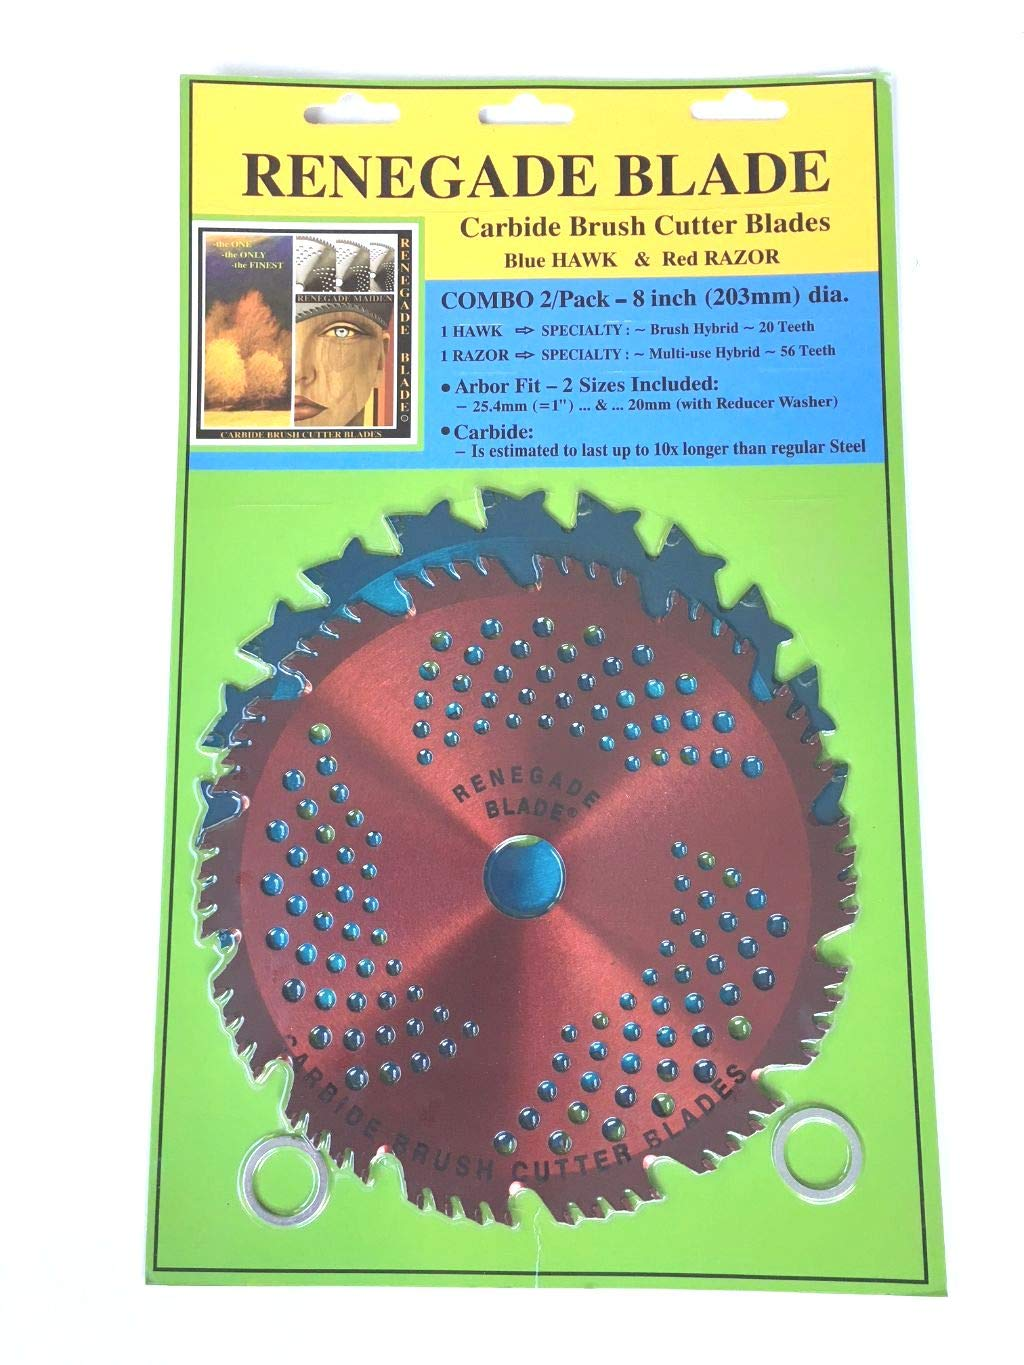 Renegade Blade 2pk-8''-20t/56t Combo Pack - (1) 20 Teeth Blue Hawk (1) 56 Teeth red Razor - Hybrid Pack GS1 Barcoded Shelf Hanging Blister Pack- Carbide Brush Cutter Blades, 203mm Dia. by Renegade Blade